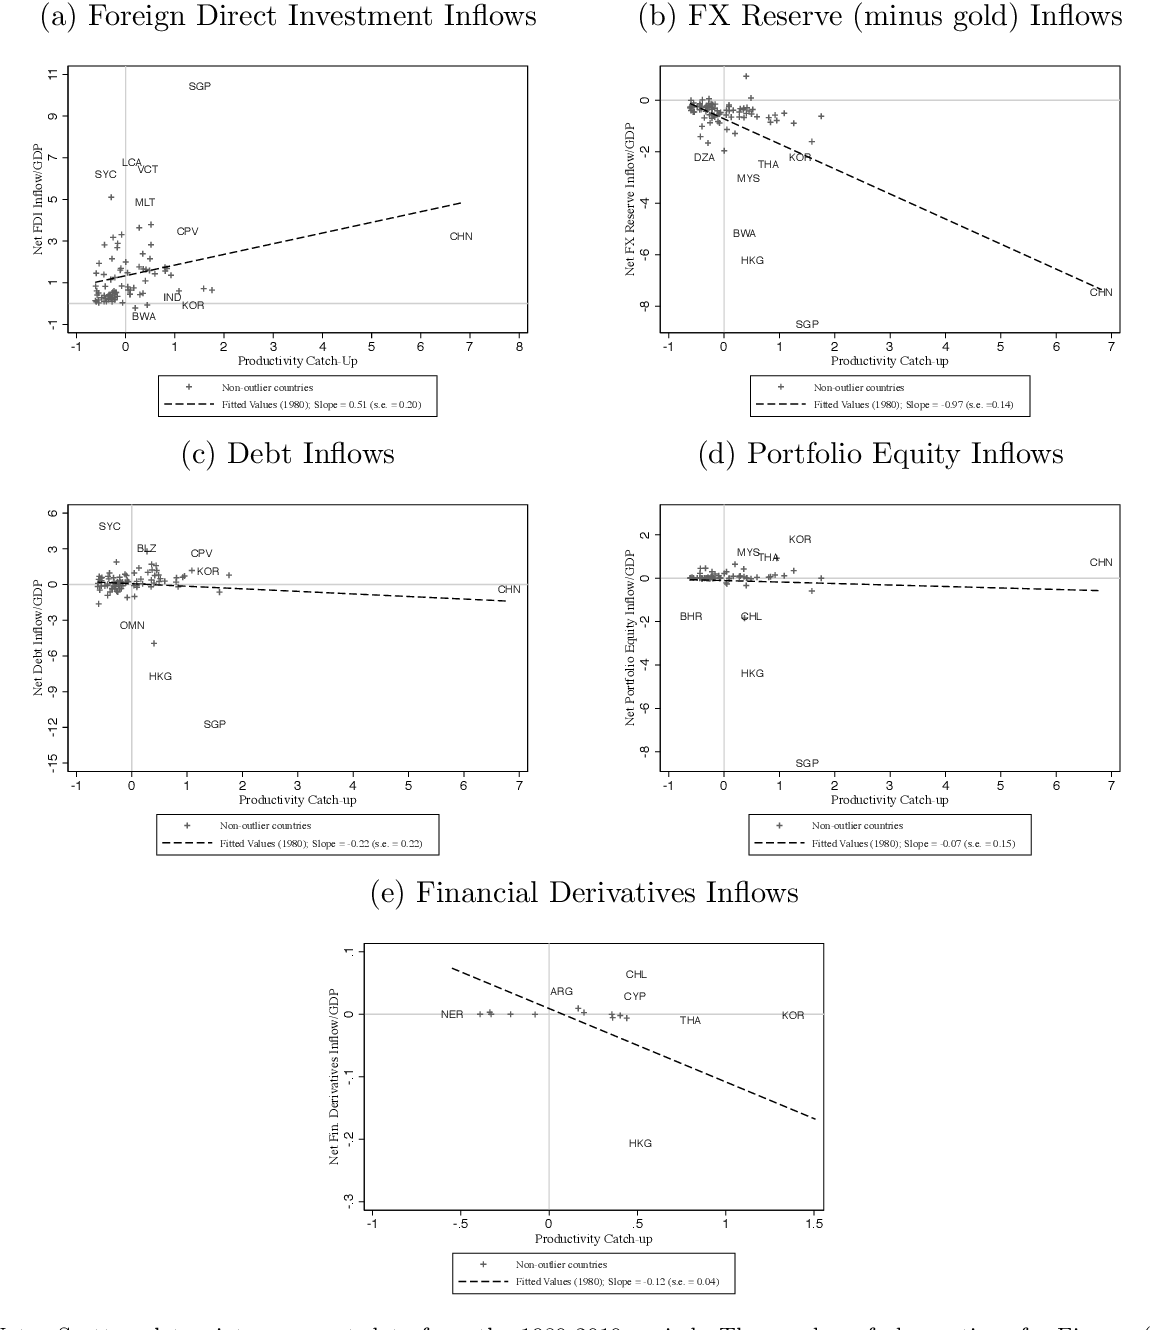 Figure 2.2: Capital Flows and Productivity Catch-up Correlations